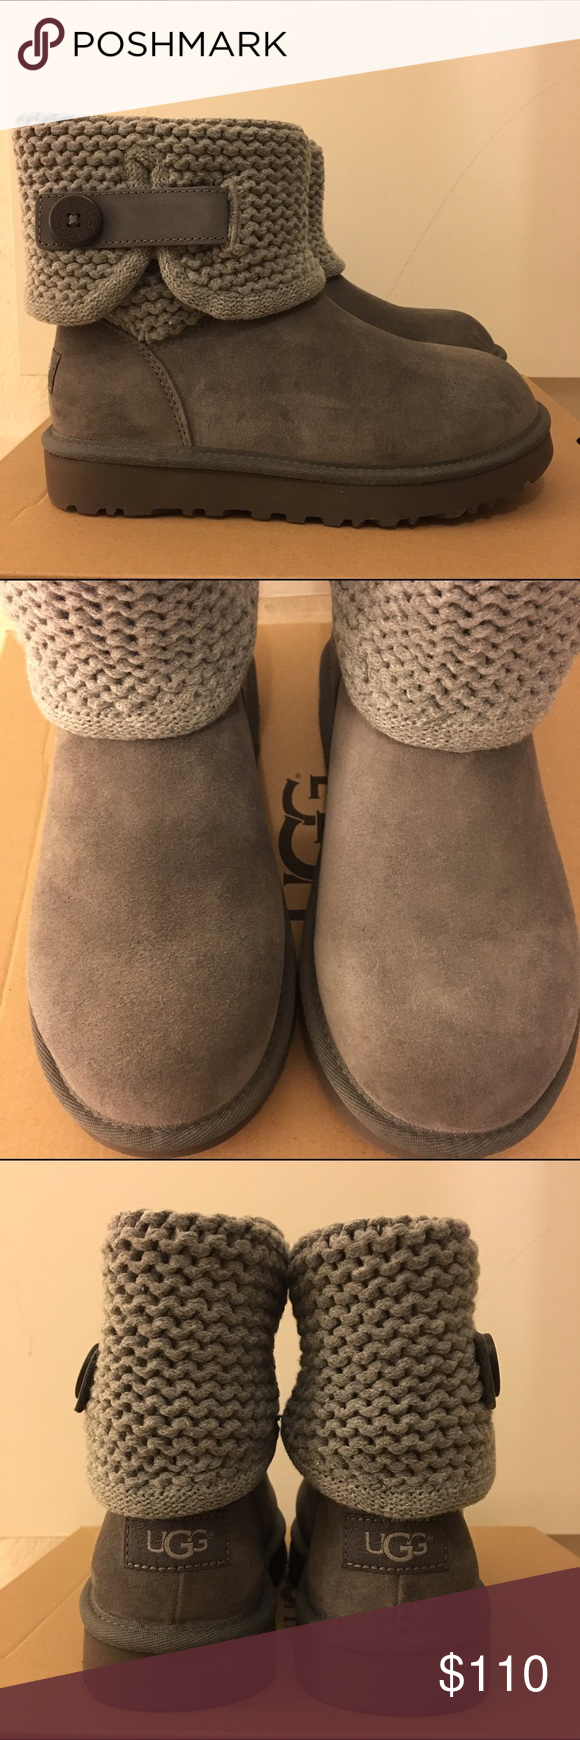 20224818eb3 NEW Women's UGG Shaina Suede & Knit Cuff Boots Shaina gray Suede and ...